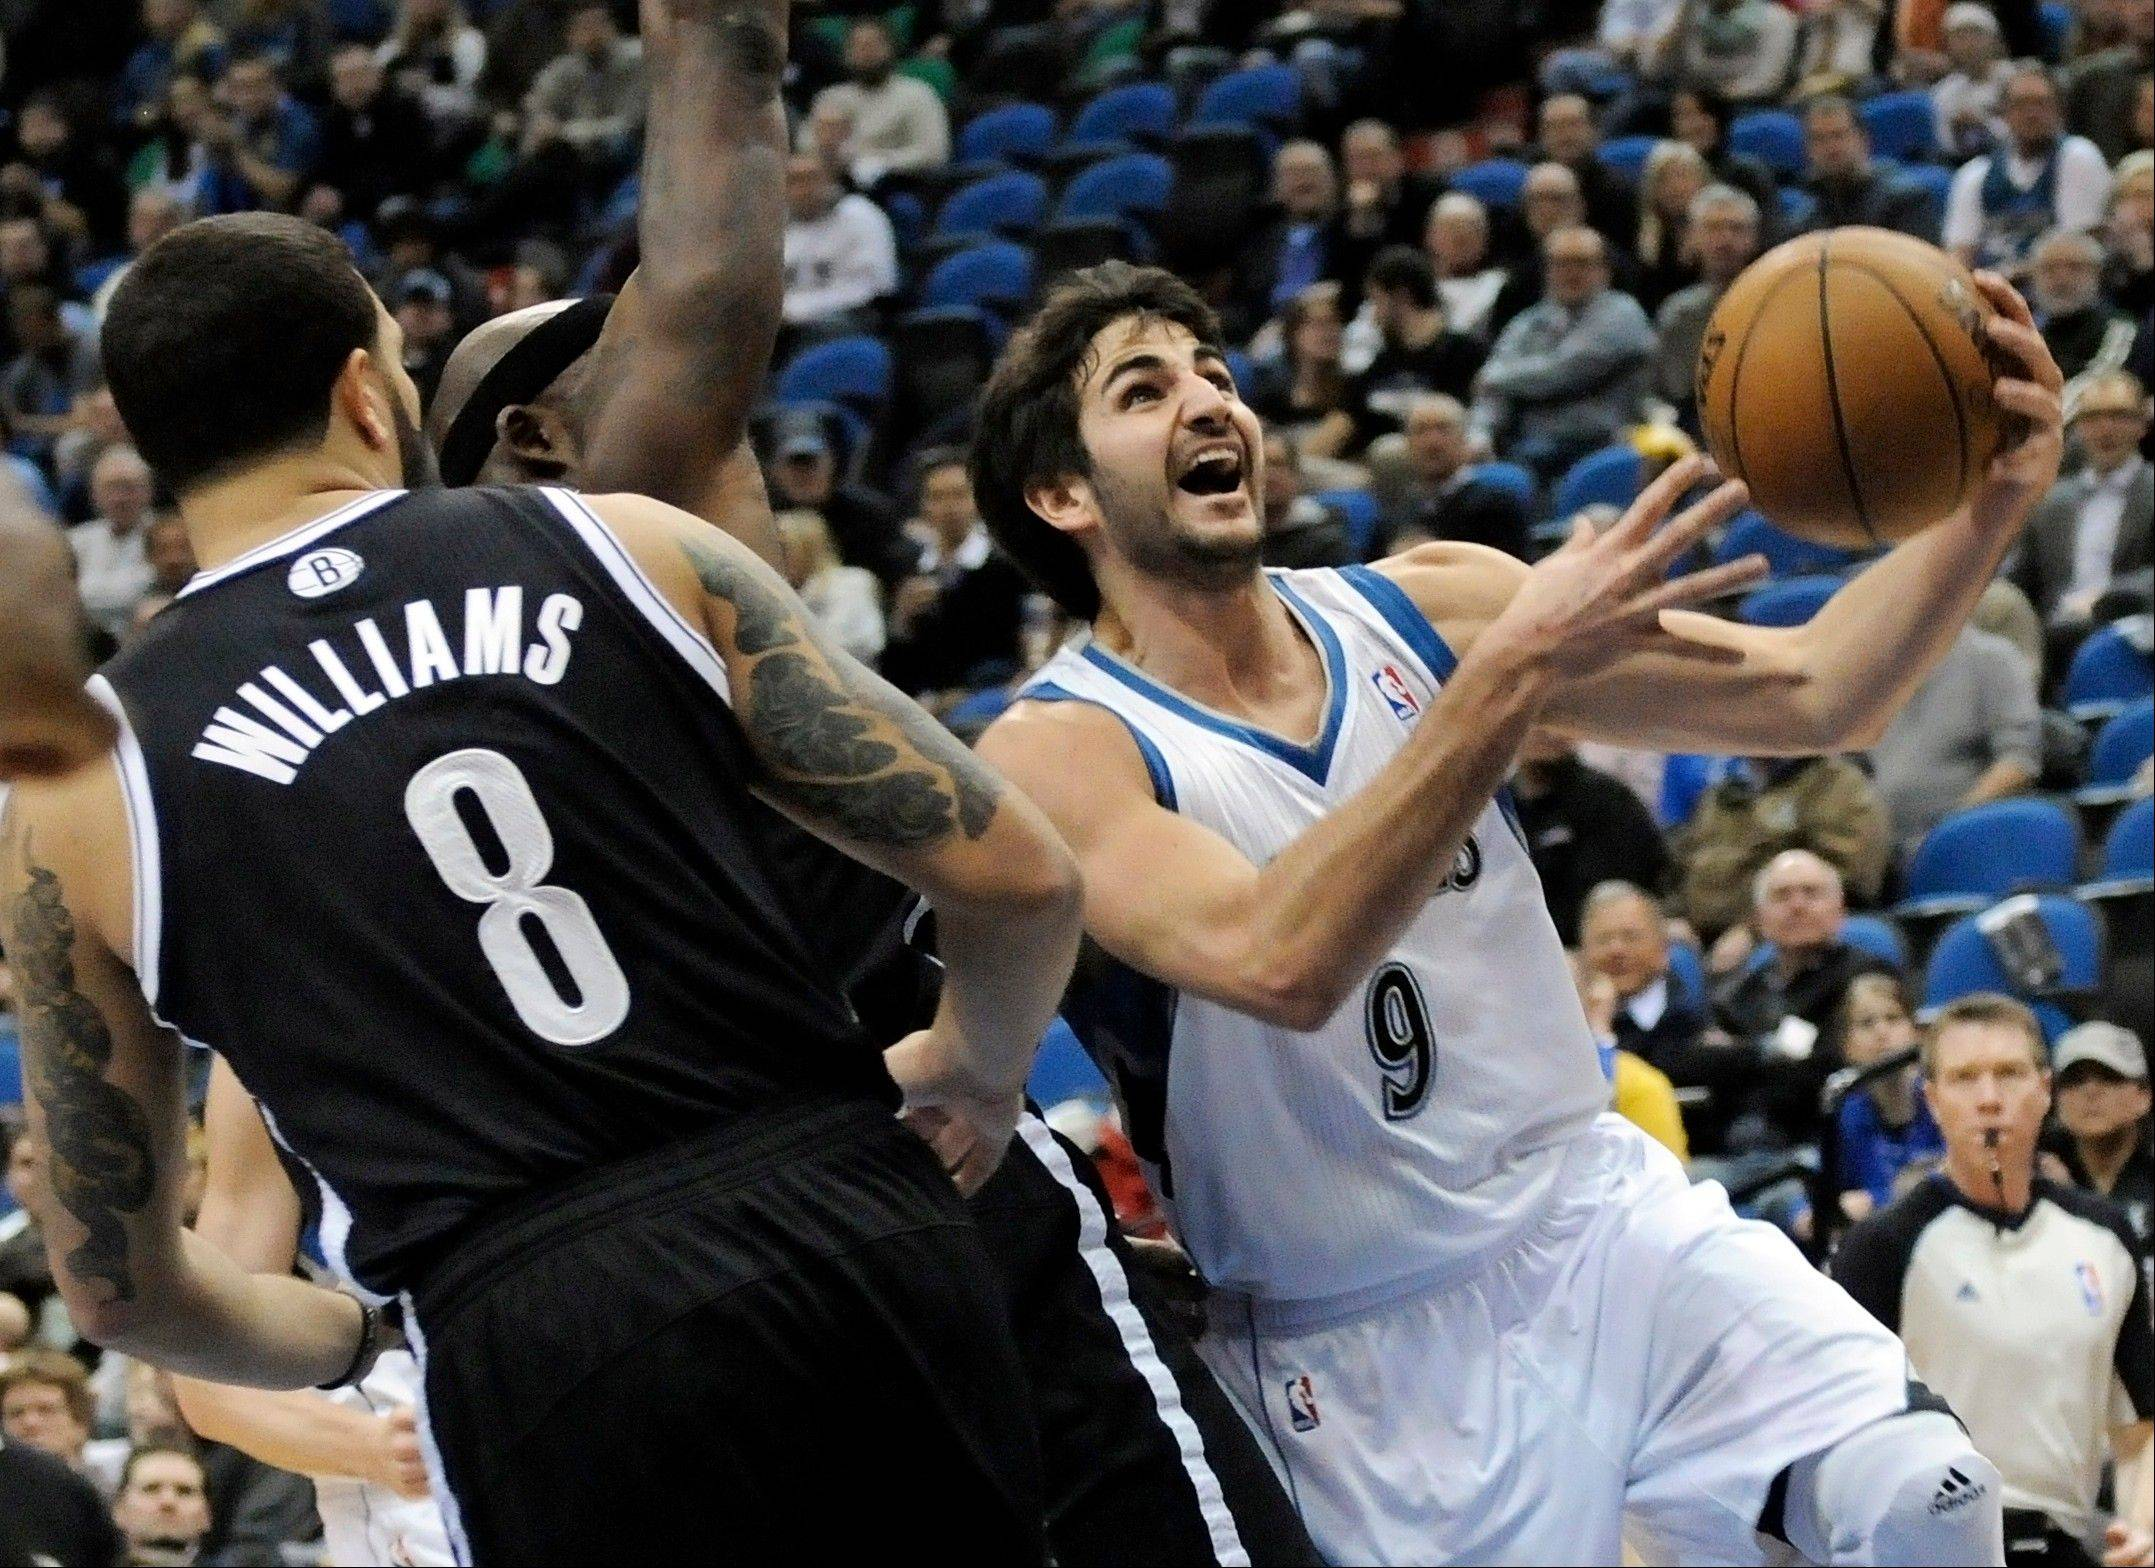 Minnesota Timberwolves� Ricky Rubio, right, of Spain, lays up past Brooklyn Nets� Deron Williams in the first half of an NBA basketball game on Wednesday, Jan. 23, 2013, in Minneapolis.